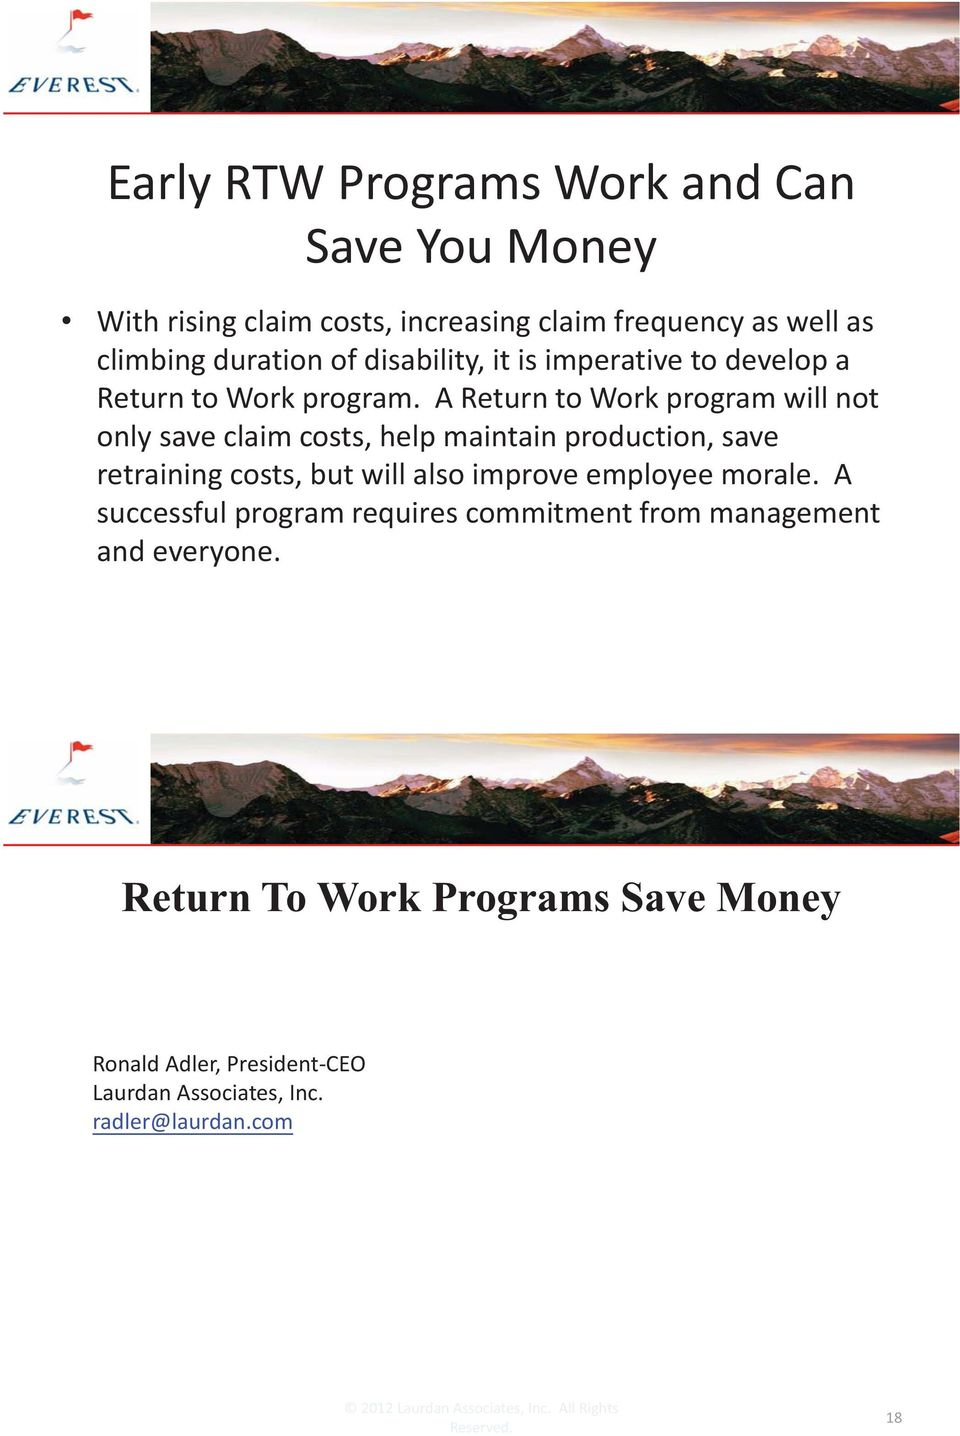 A Return to Work program will not only save claim costs, help maintain production, save retraining costs, but will also improve